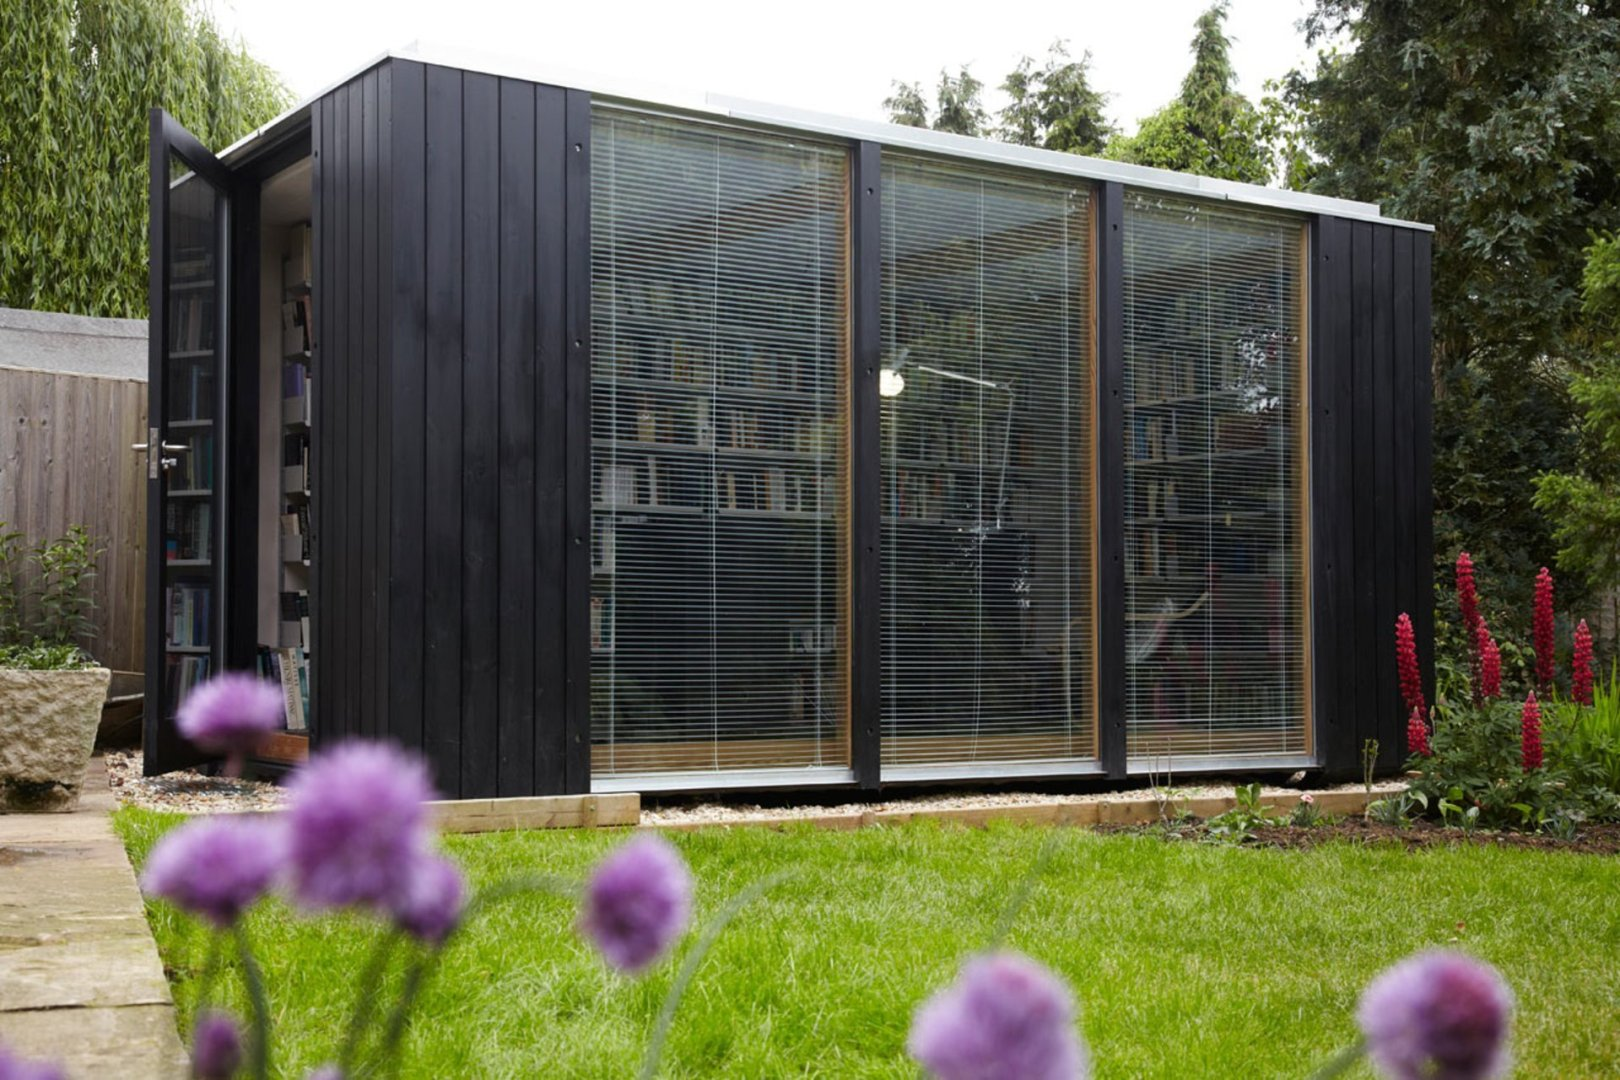 Flat Pack Pre-Fab Building Makes Stunning Backyard Library